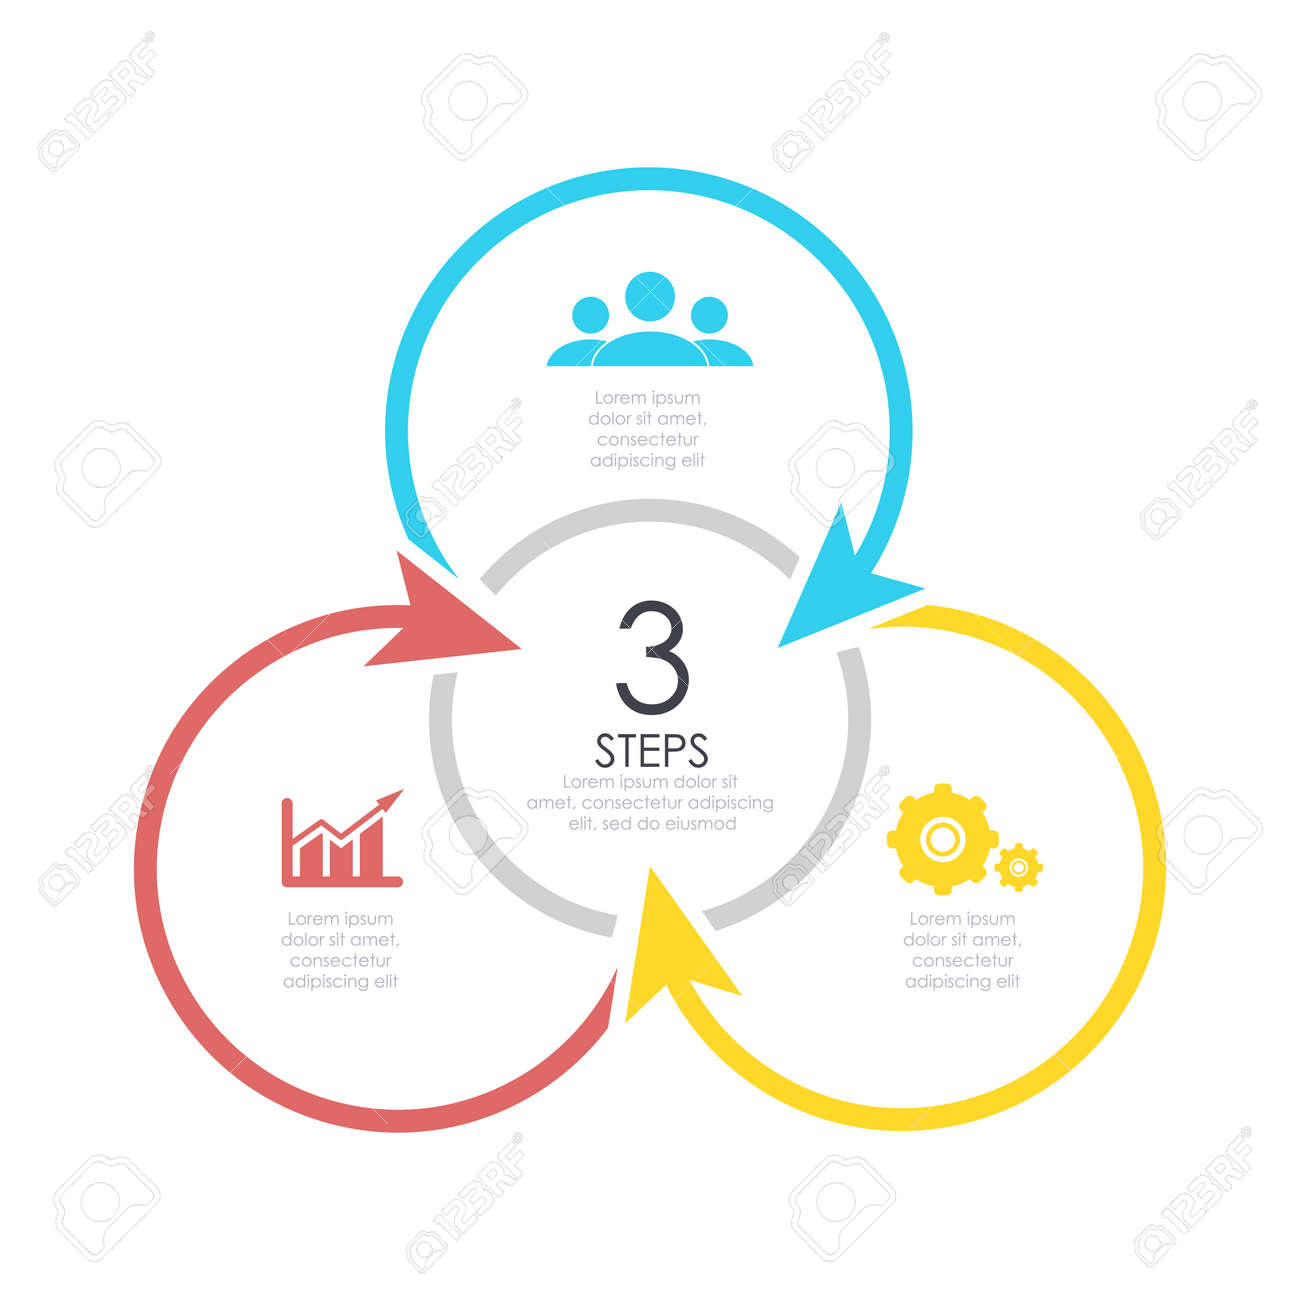 Outline Round Infographic Element Circle Template 3 Steps With